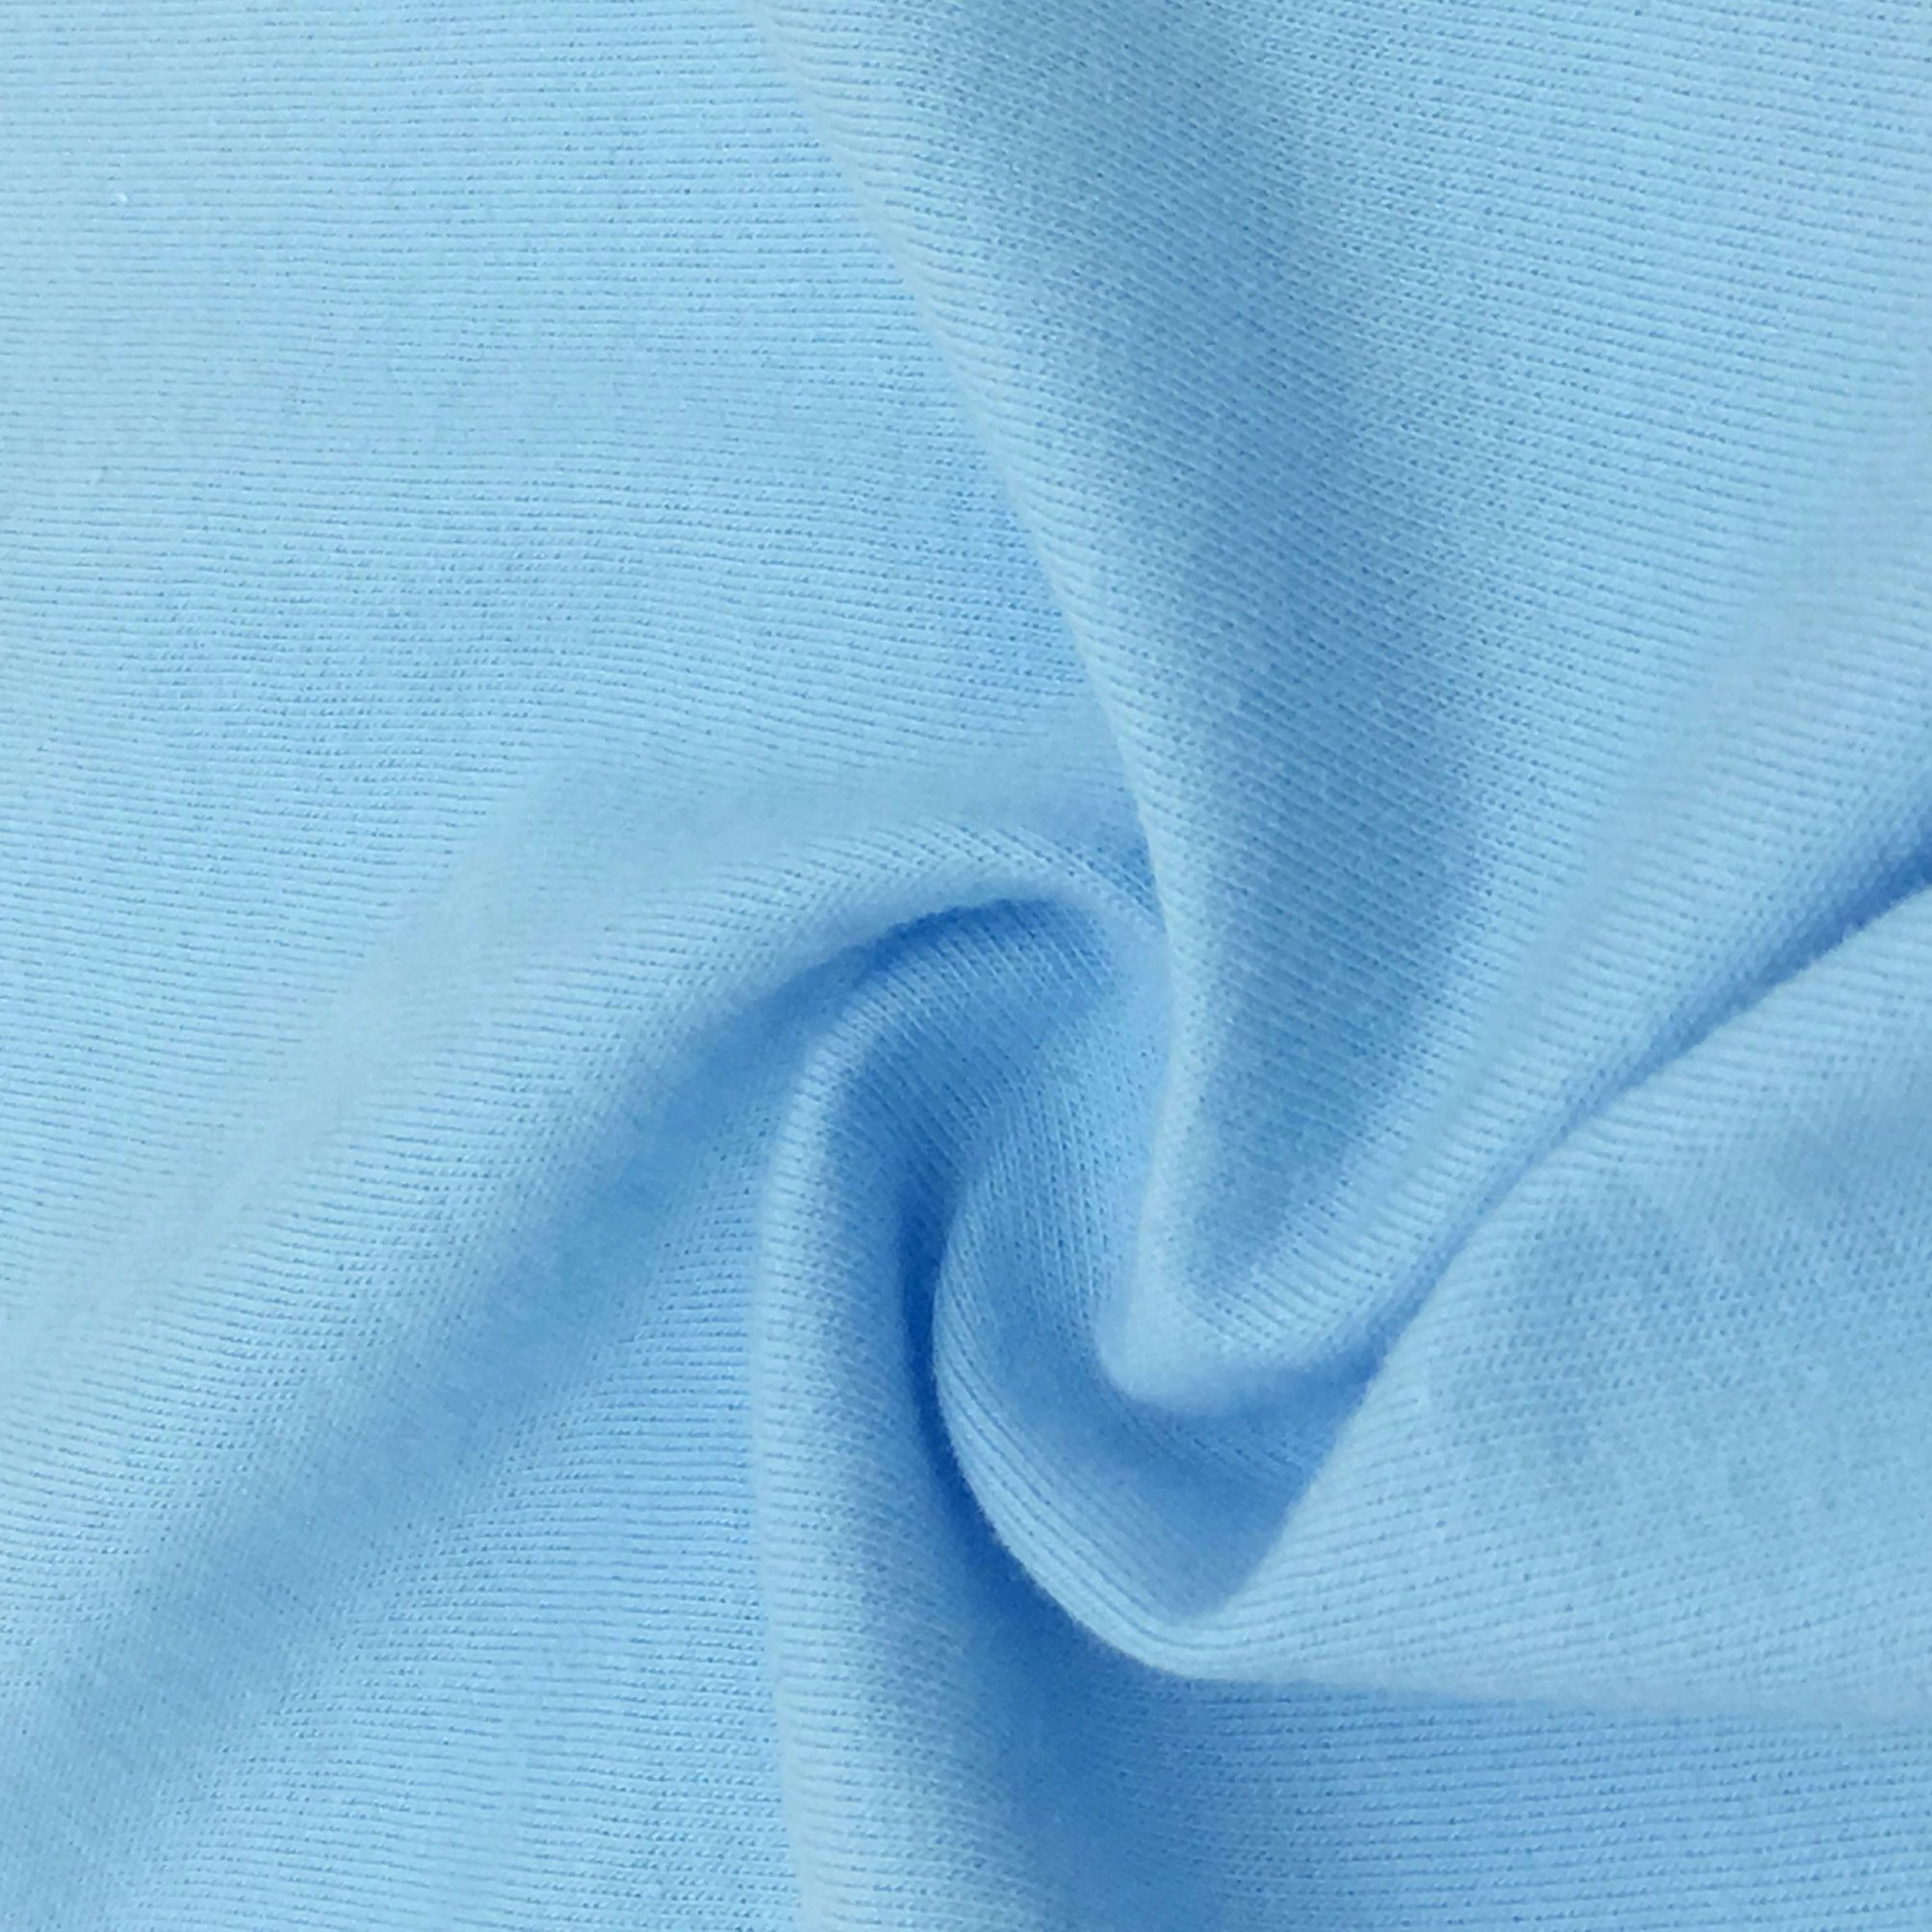 China 32s 100 Cotton Jersey Knit Fabric For T Shirt Photos